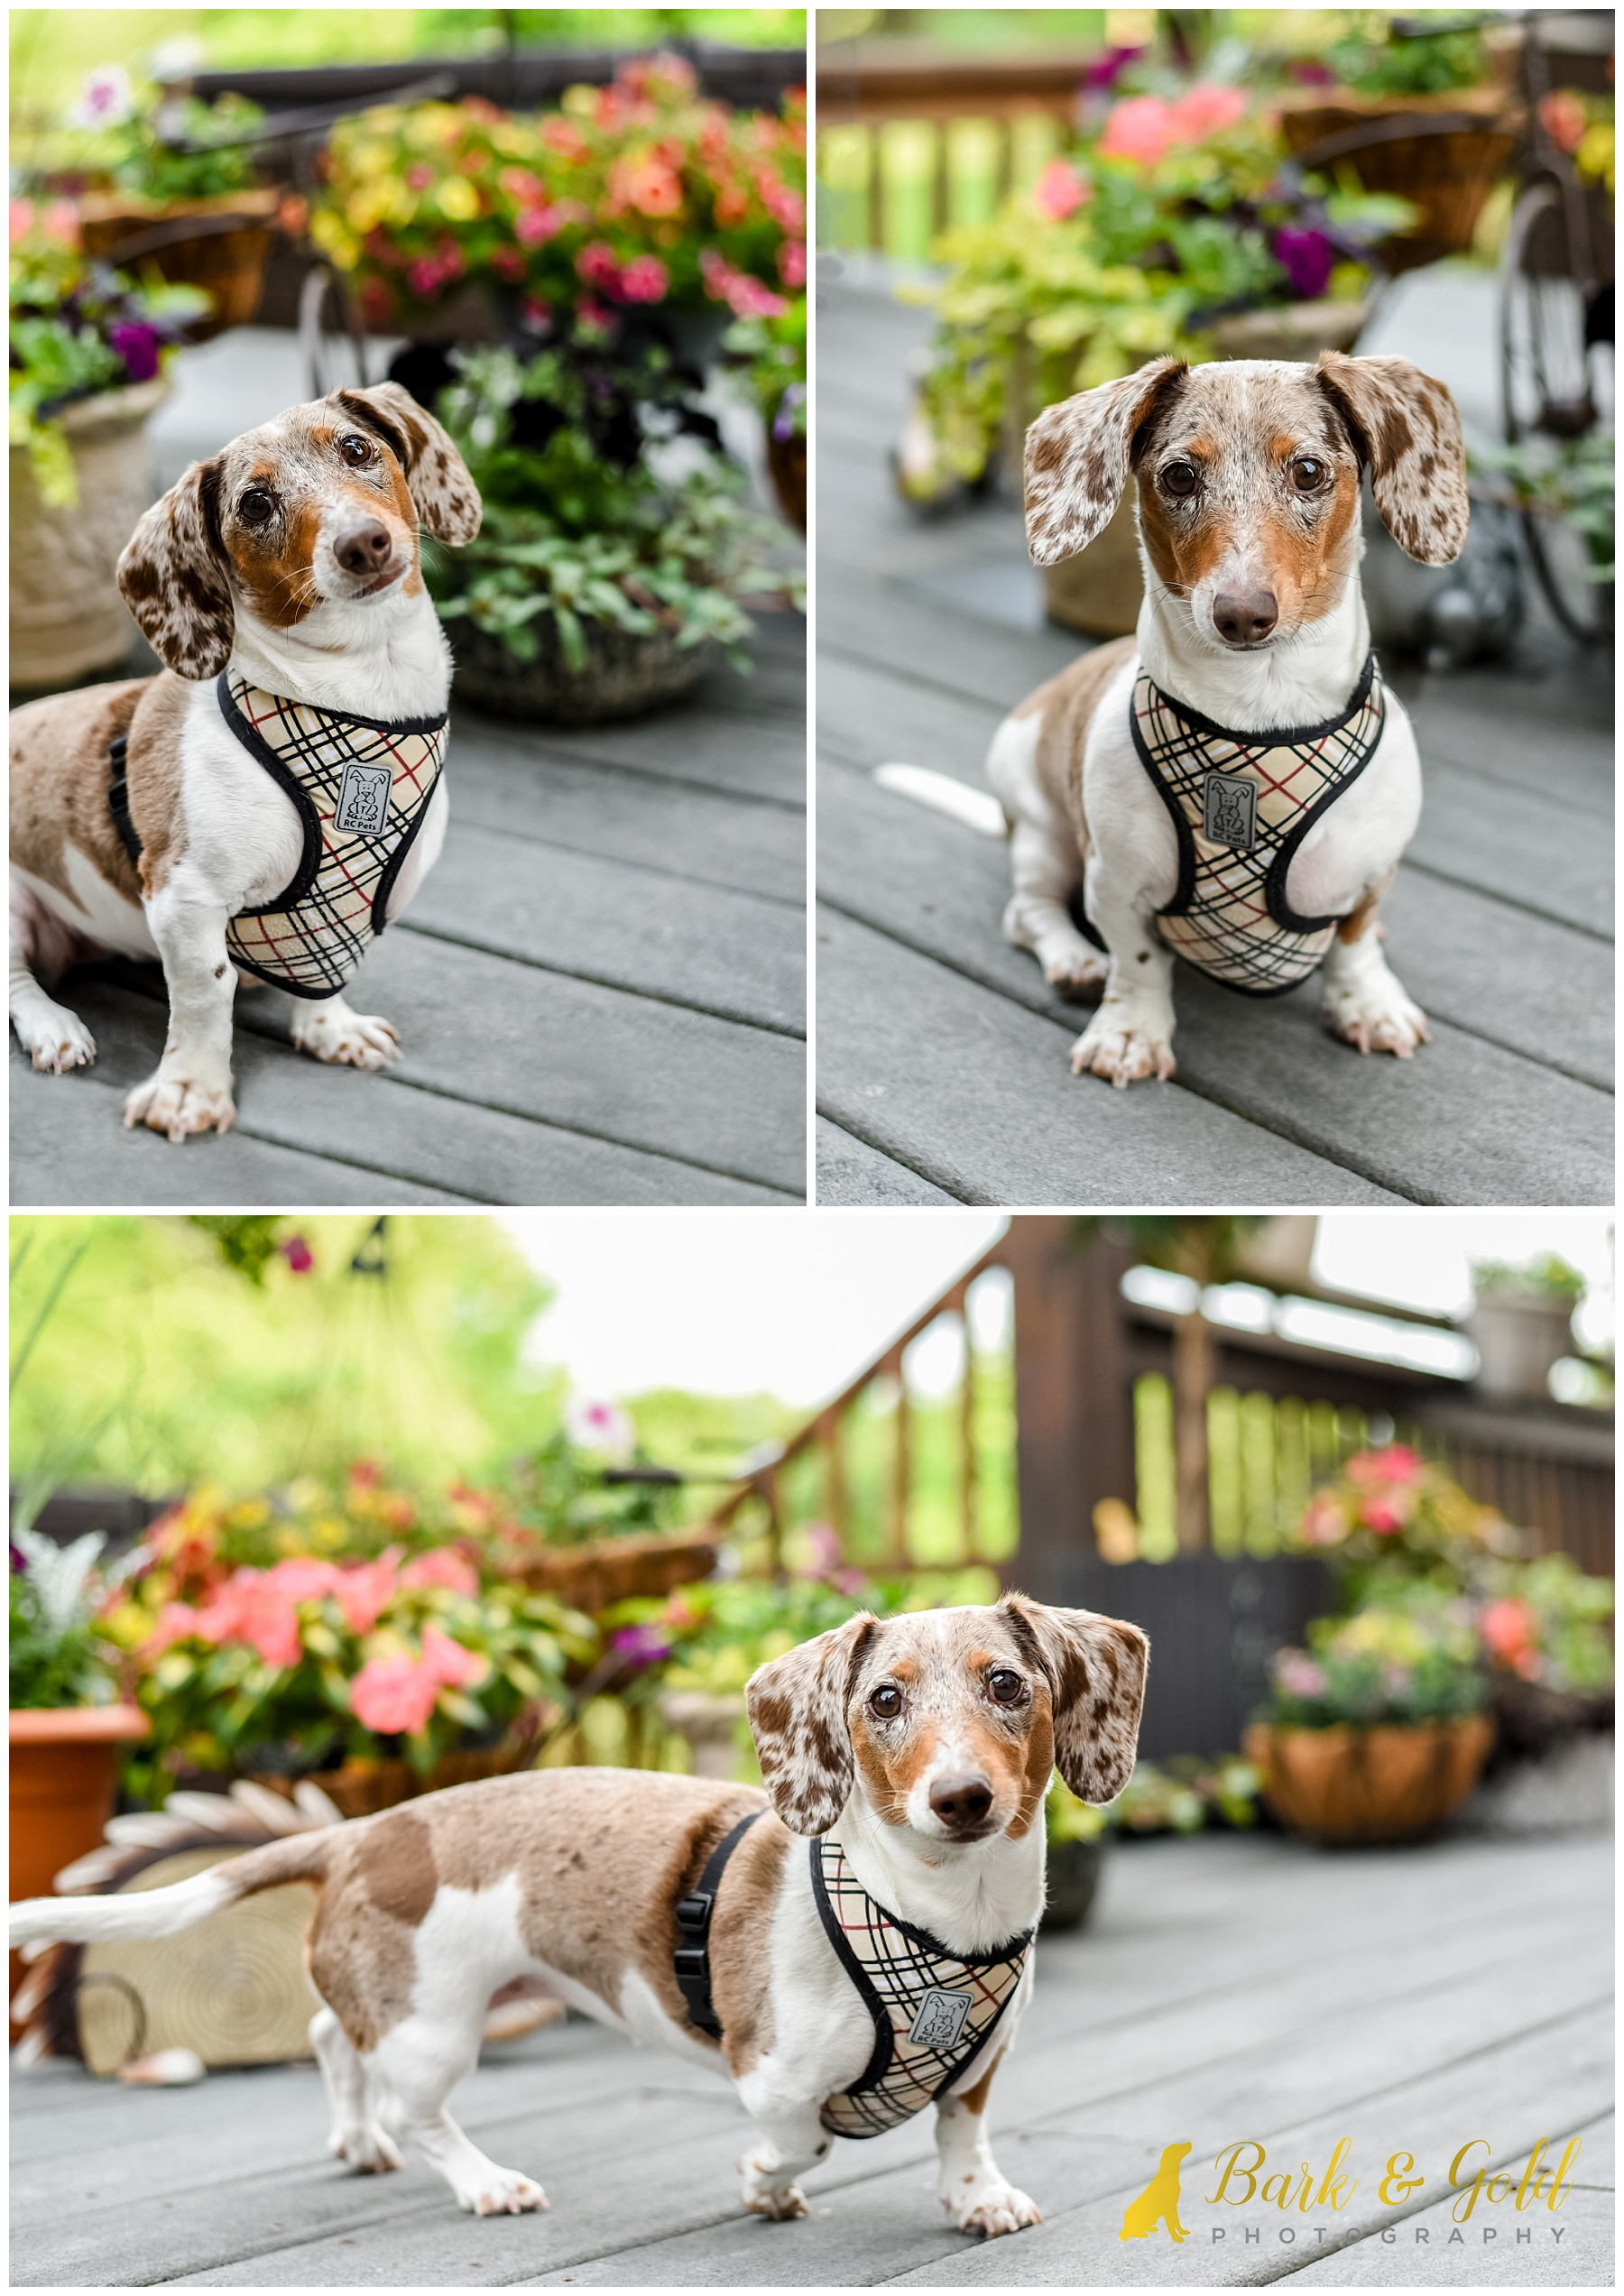 dapple Dachshund and flower planters on deck during at-home session